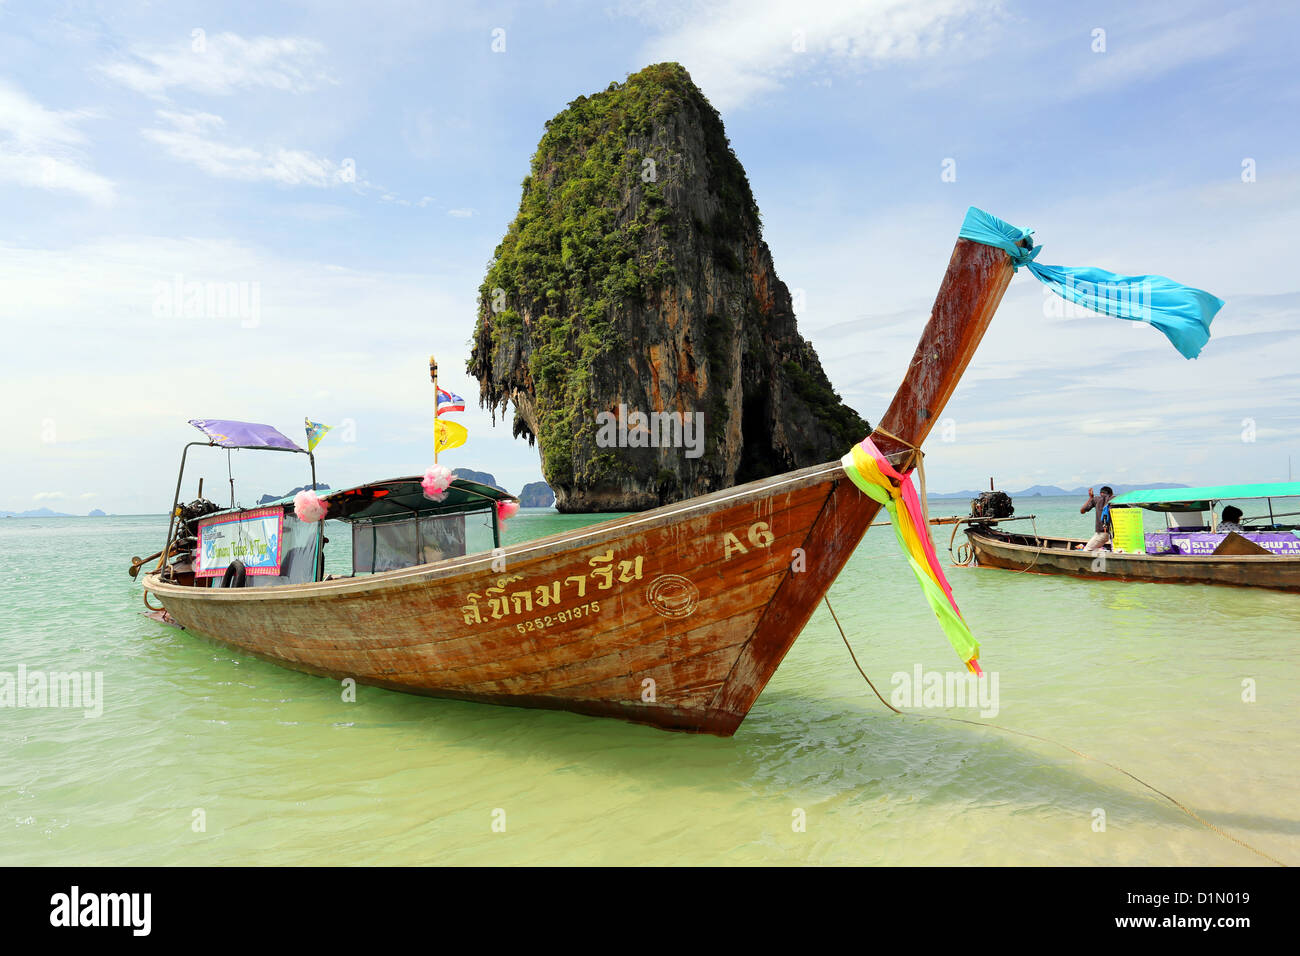 Traditional Thai long tail boat at Phranang Cave Beach, Railay Beach, Krabi, Phuket, Thailand - Stock Image